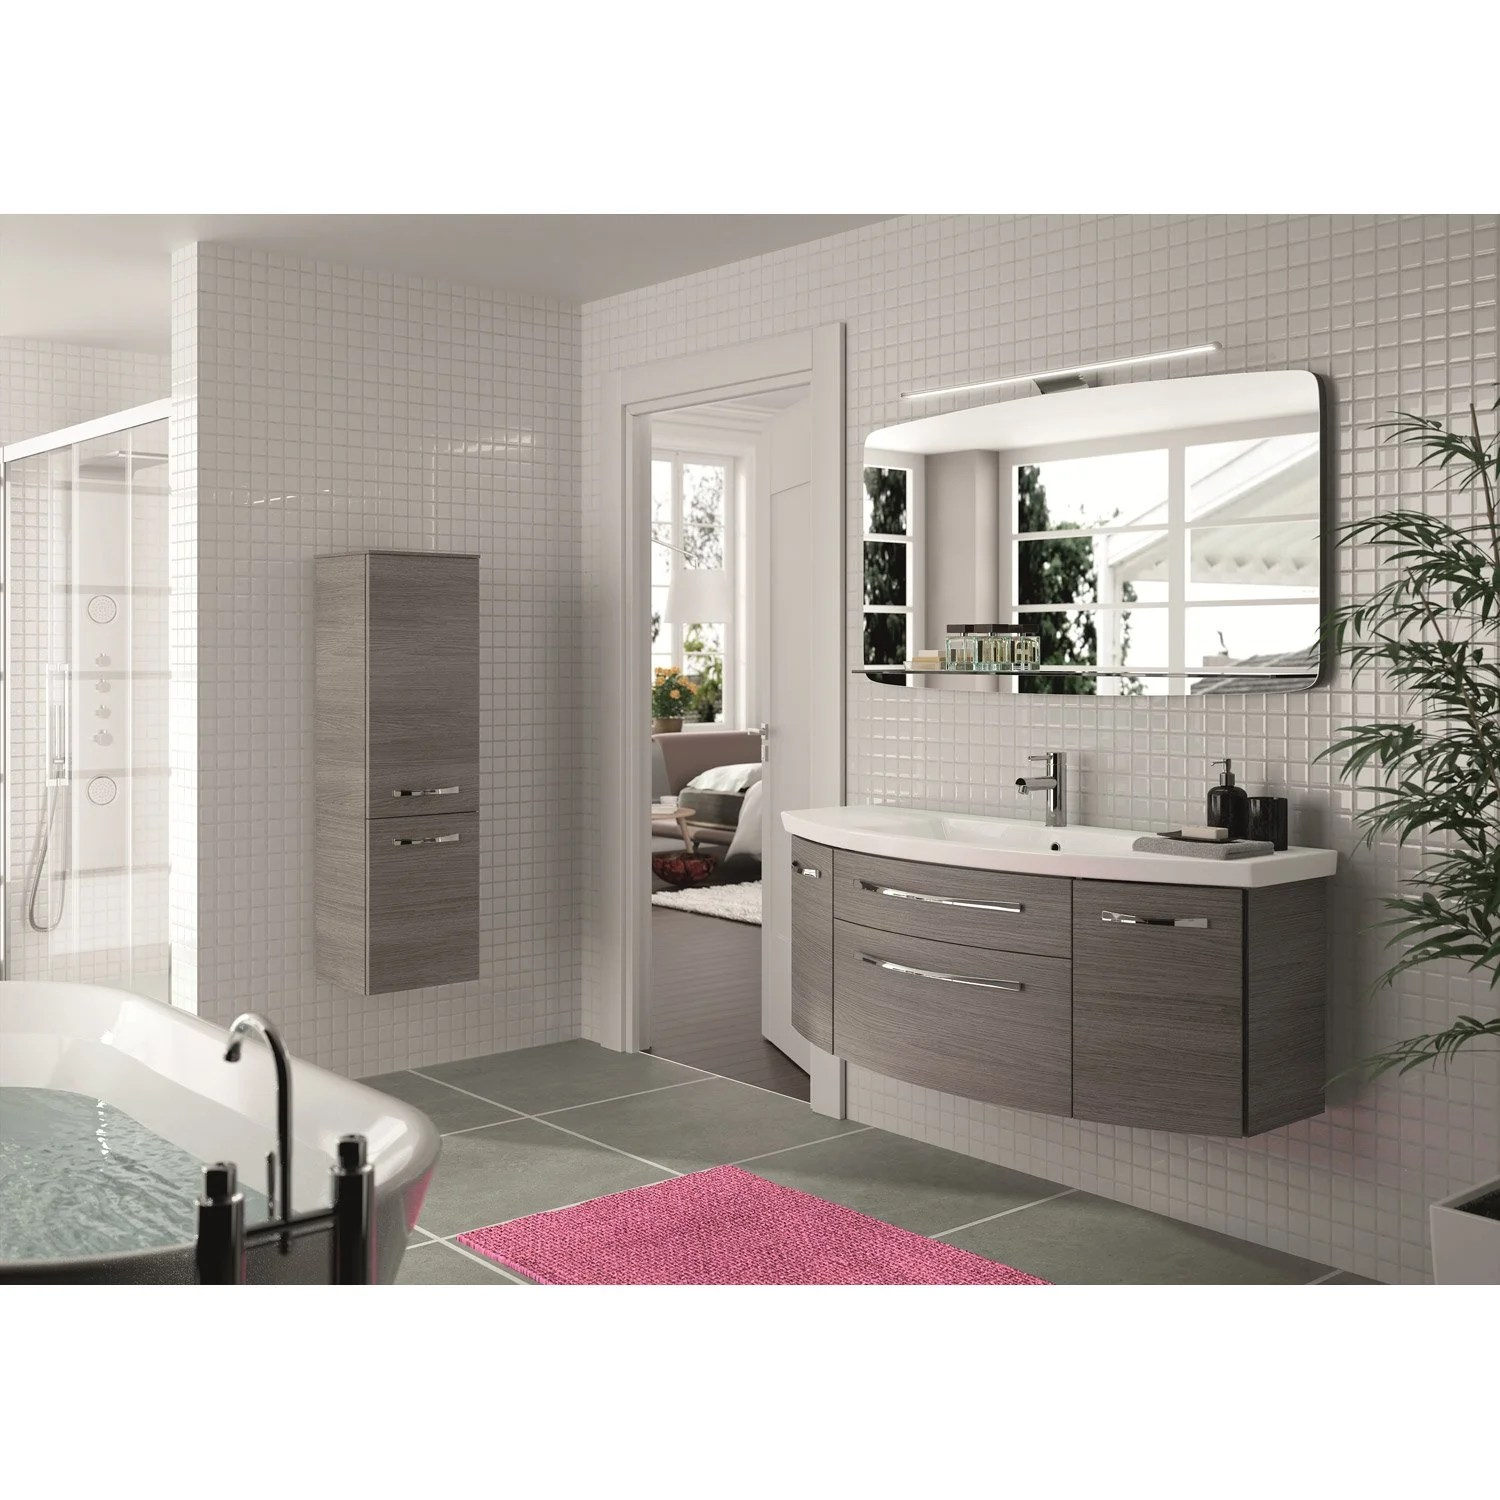 Meuble Salle De Bain Leroy Merlin Collection Image Bright Shadow Online